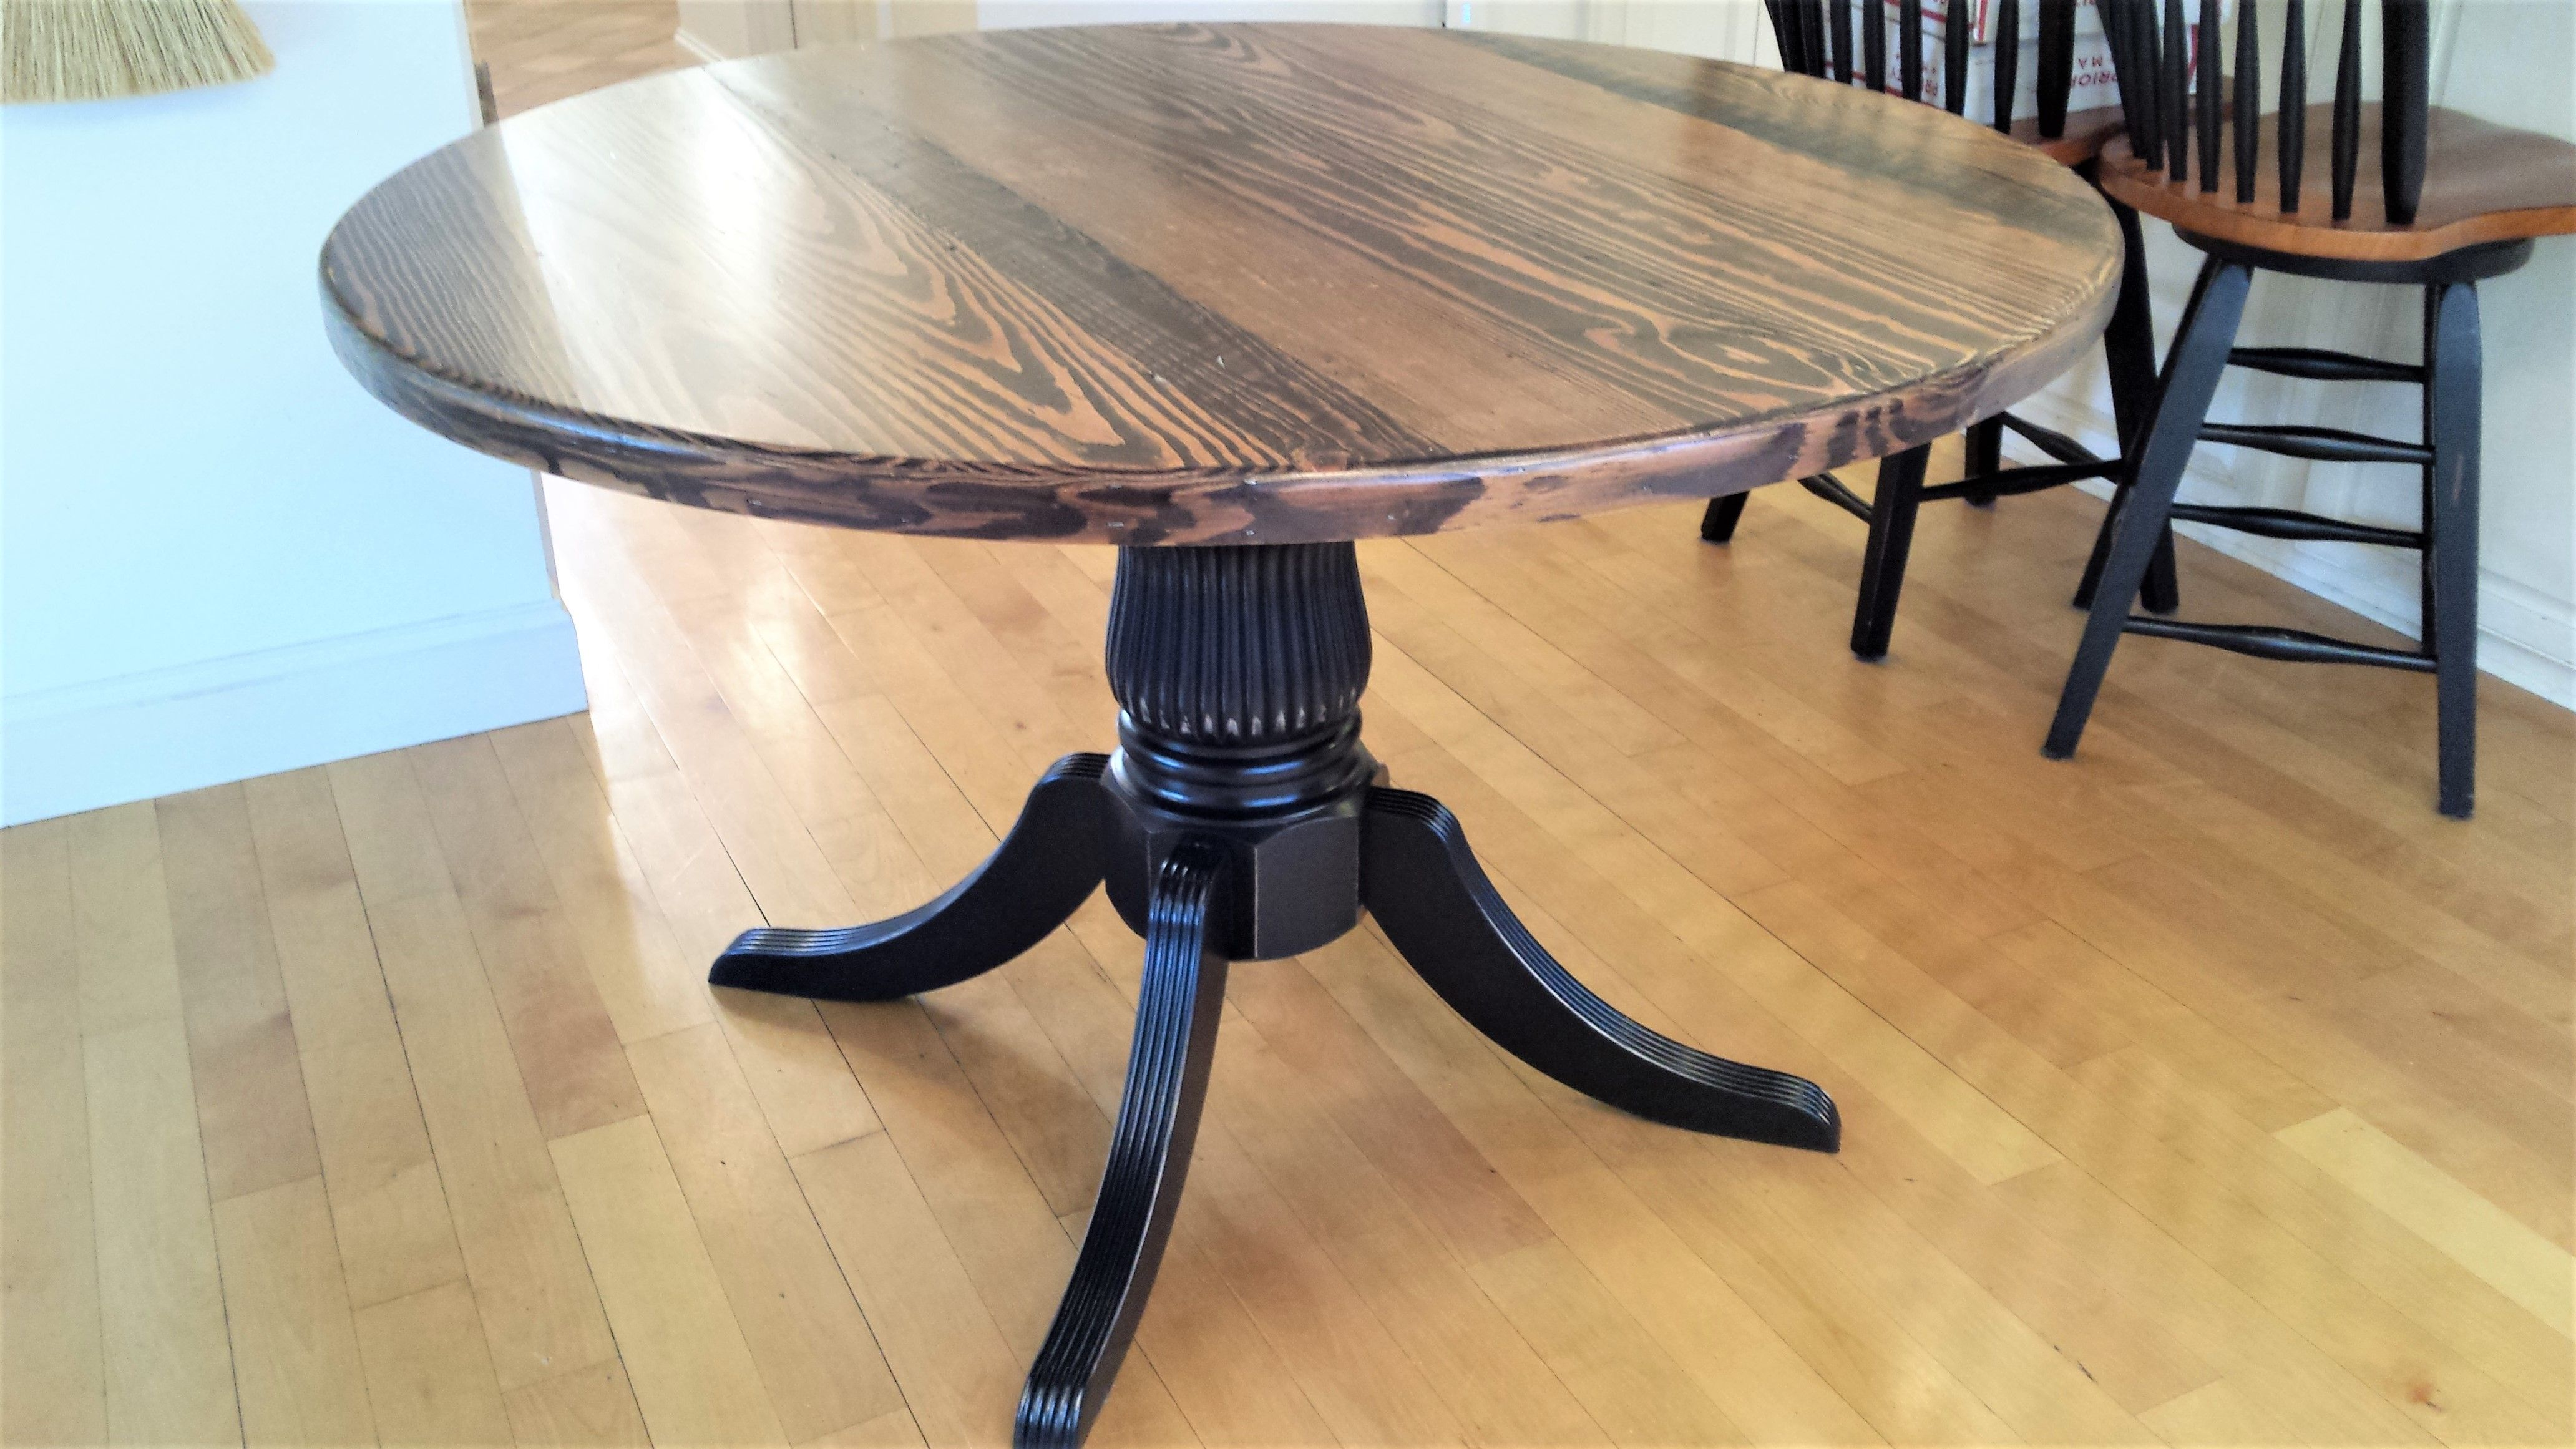 Buy A Handmade Reclaimed Wood Round Pedestal Table Made